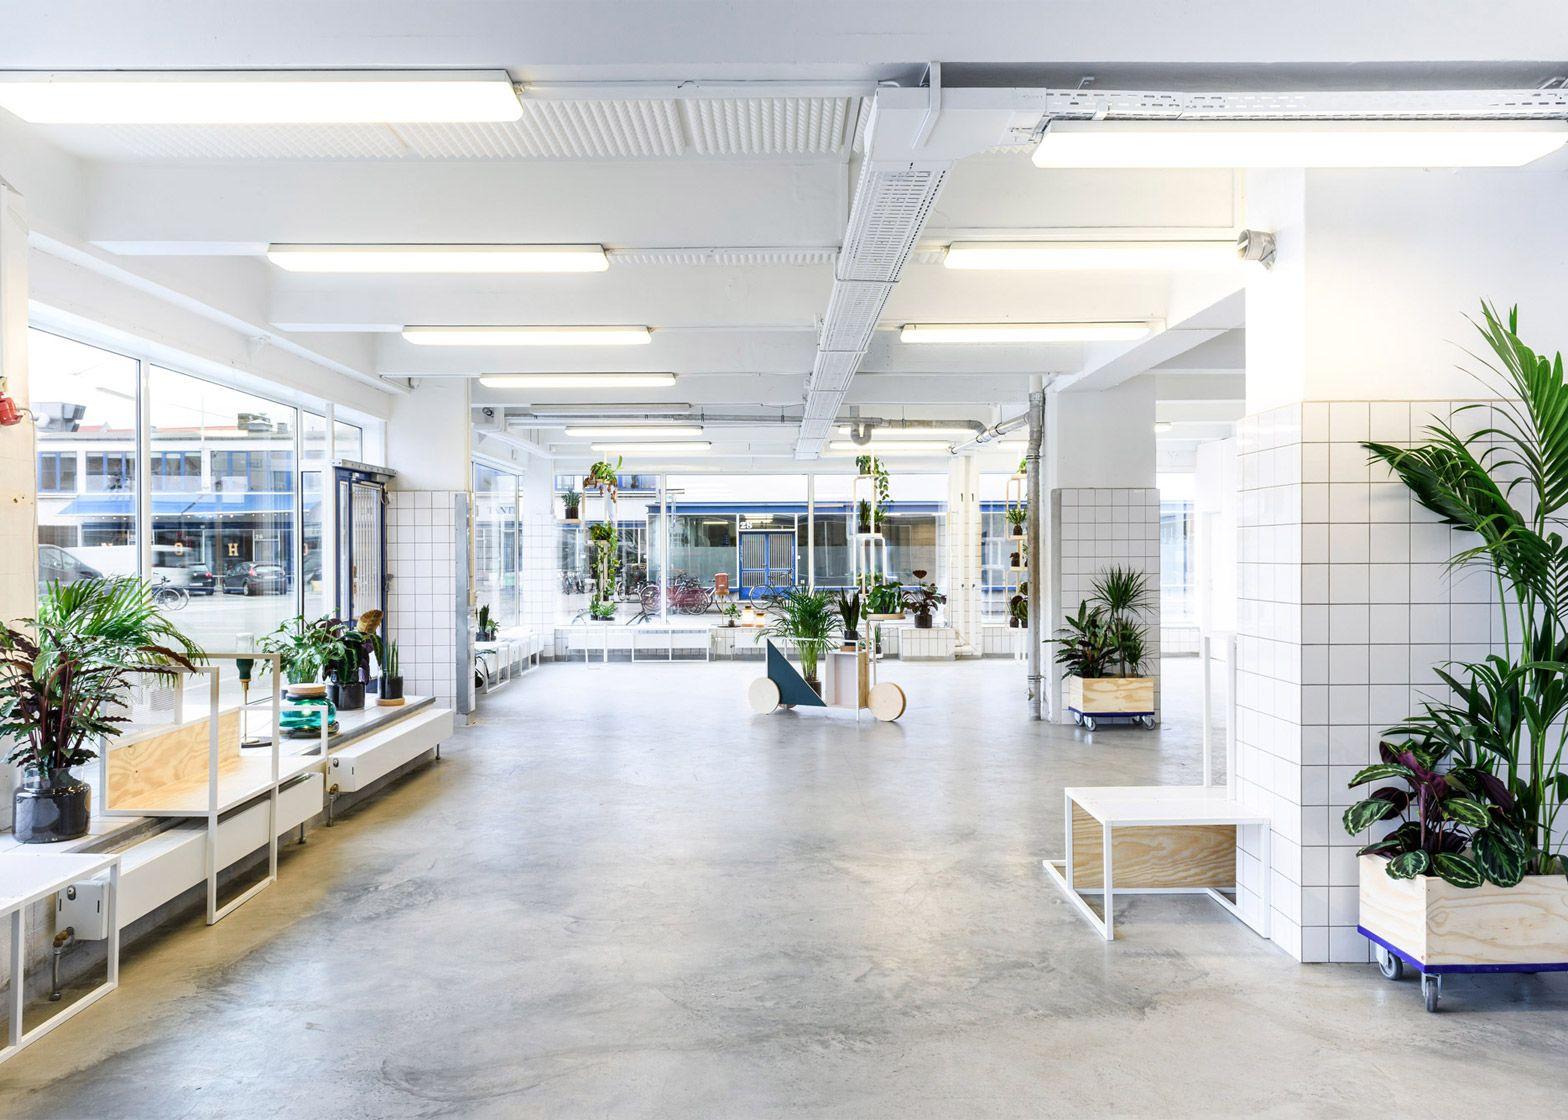 Space10 lab by ikea will explore the future of home design